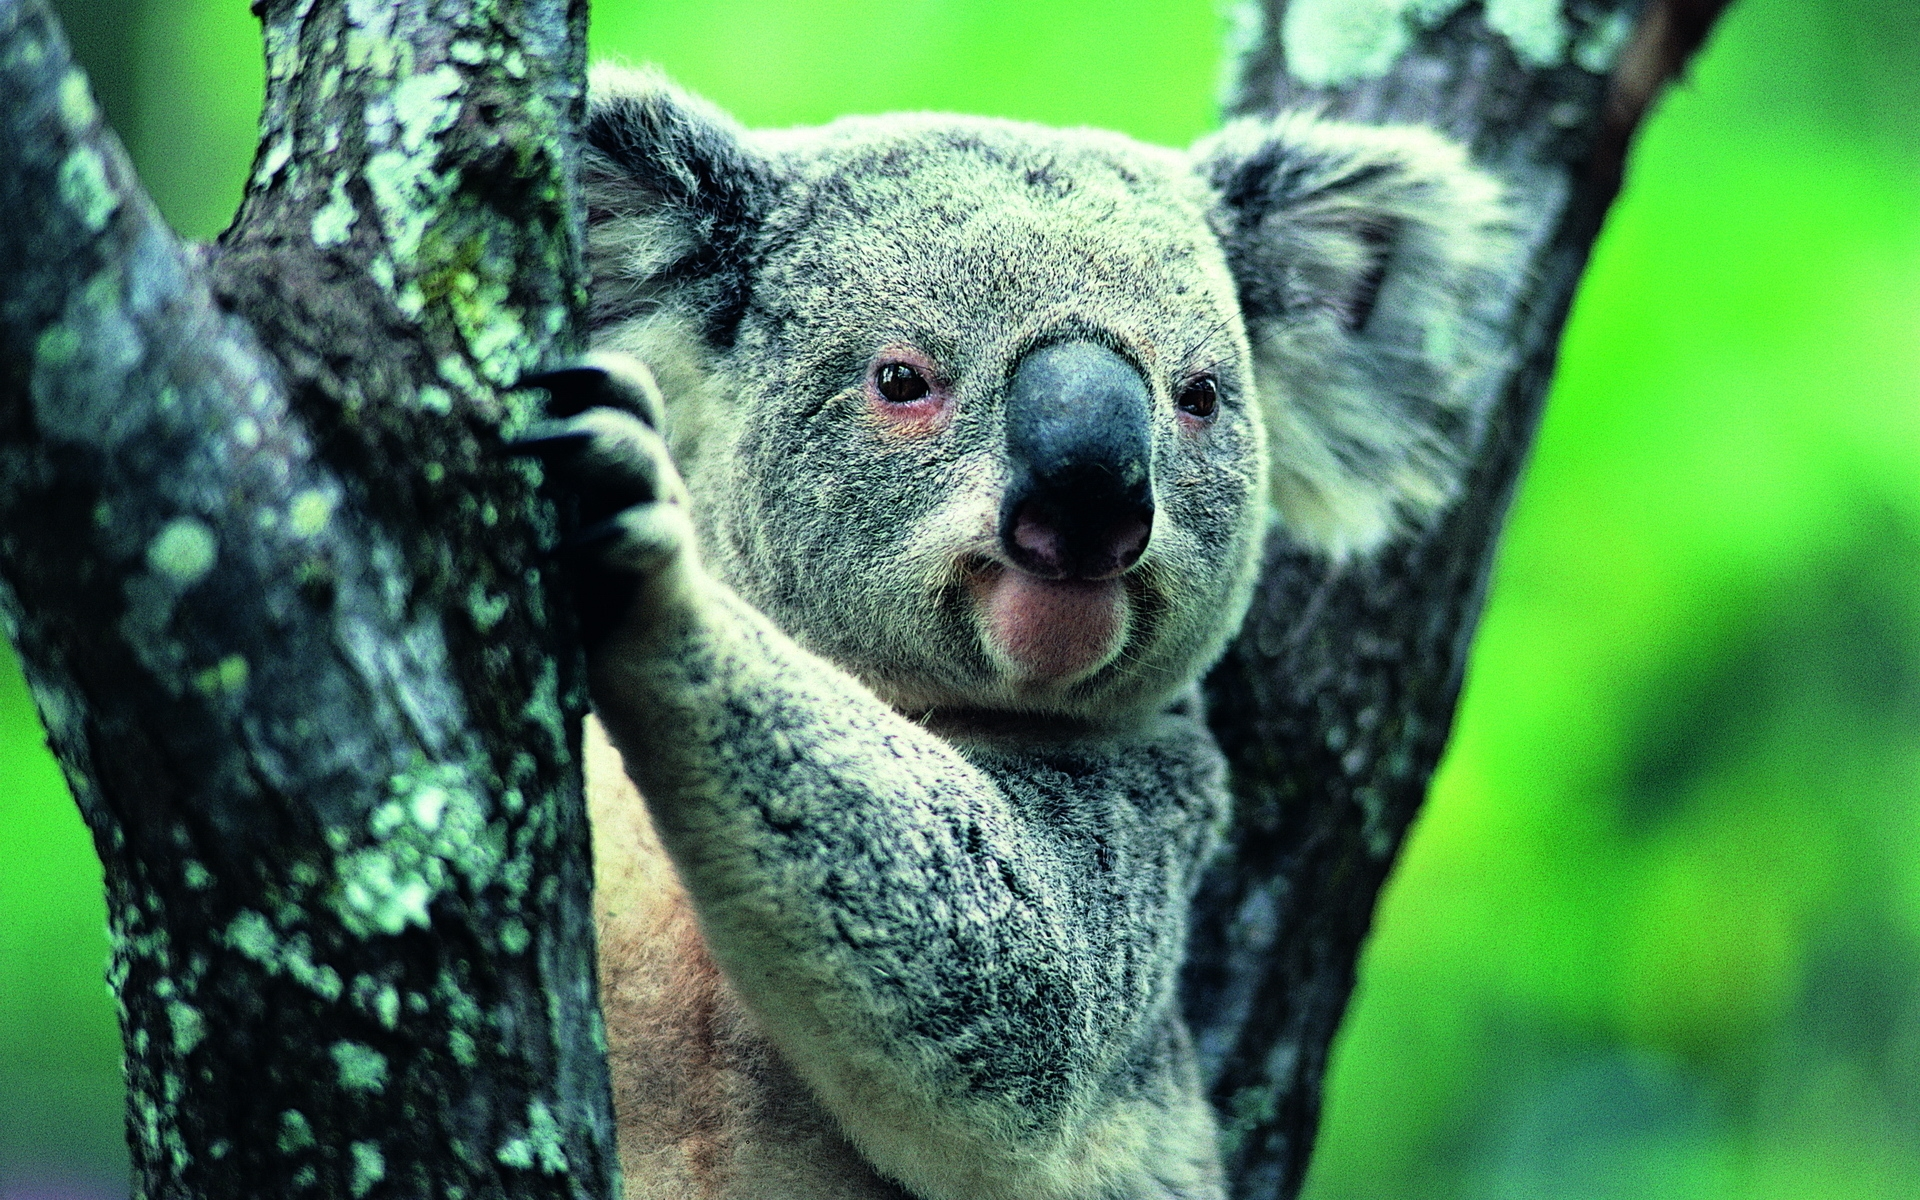 32546 download wallpaper Animals, Koalas screensavers and pictures for free